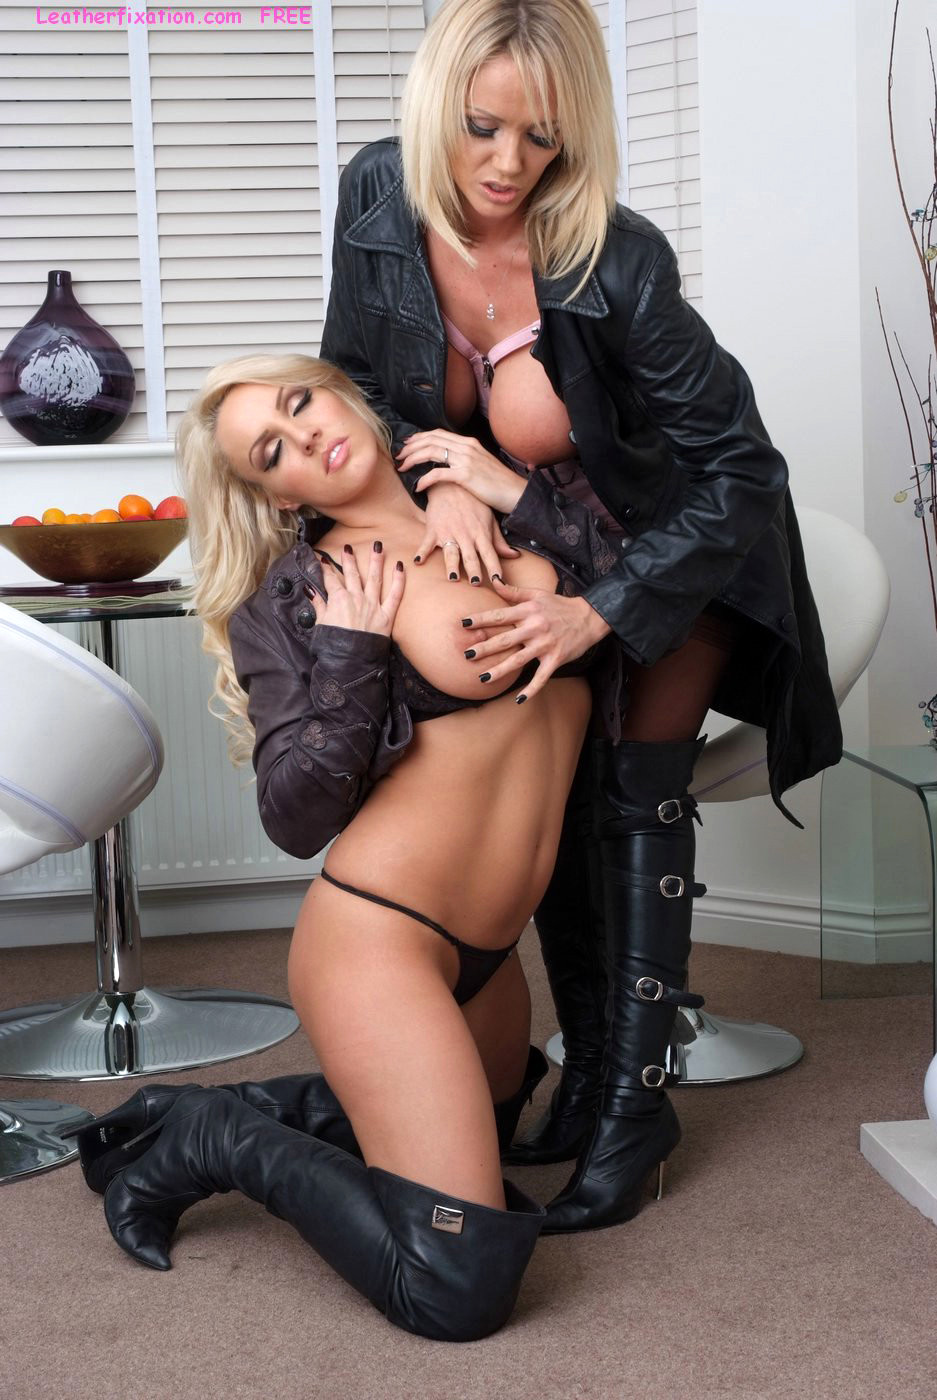 Leather Fixation Lucy Zara Dannii Harwood Summers Boots -6641